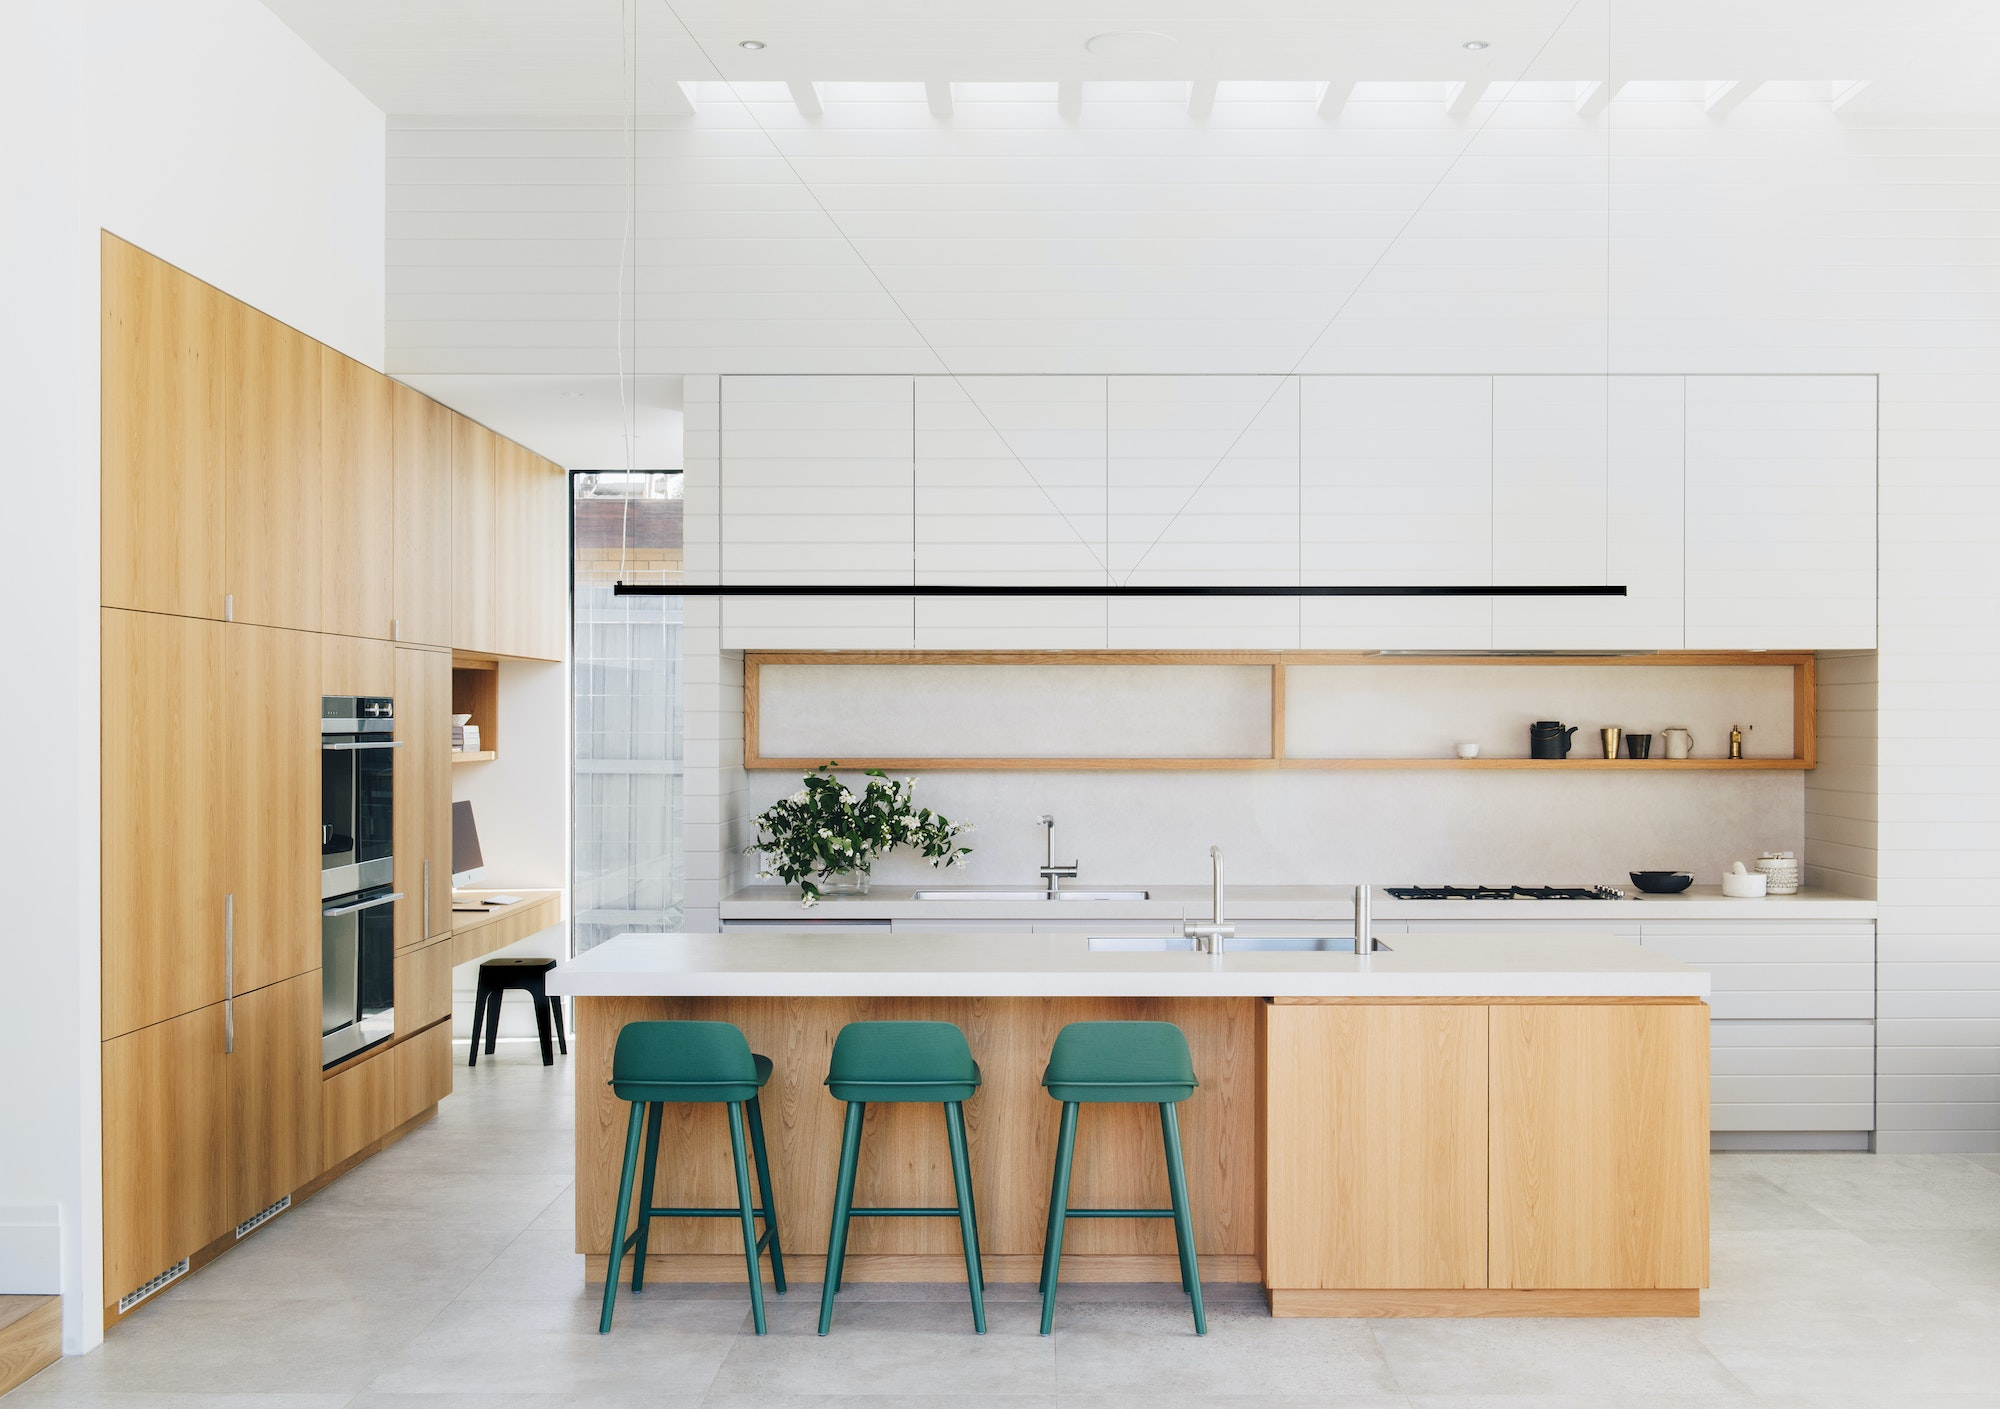 U0027Residential Decorationu0027: Stables House By Robson Rak Architecture And  Interiors. Photo Credit. U0027